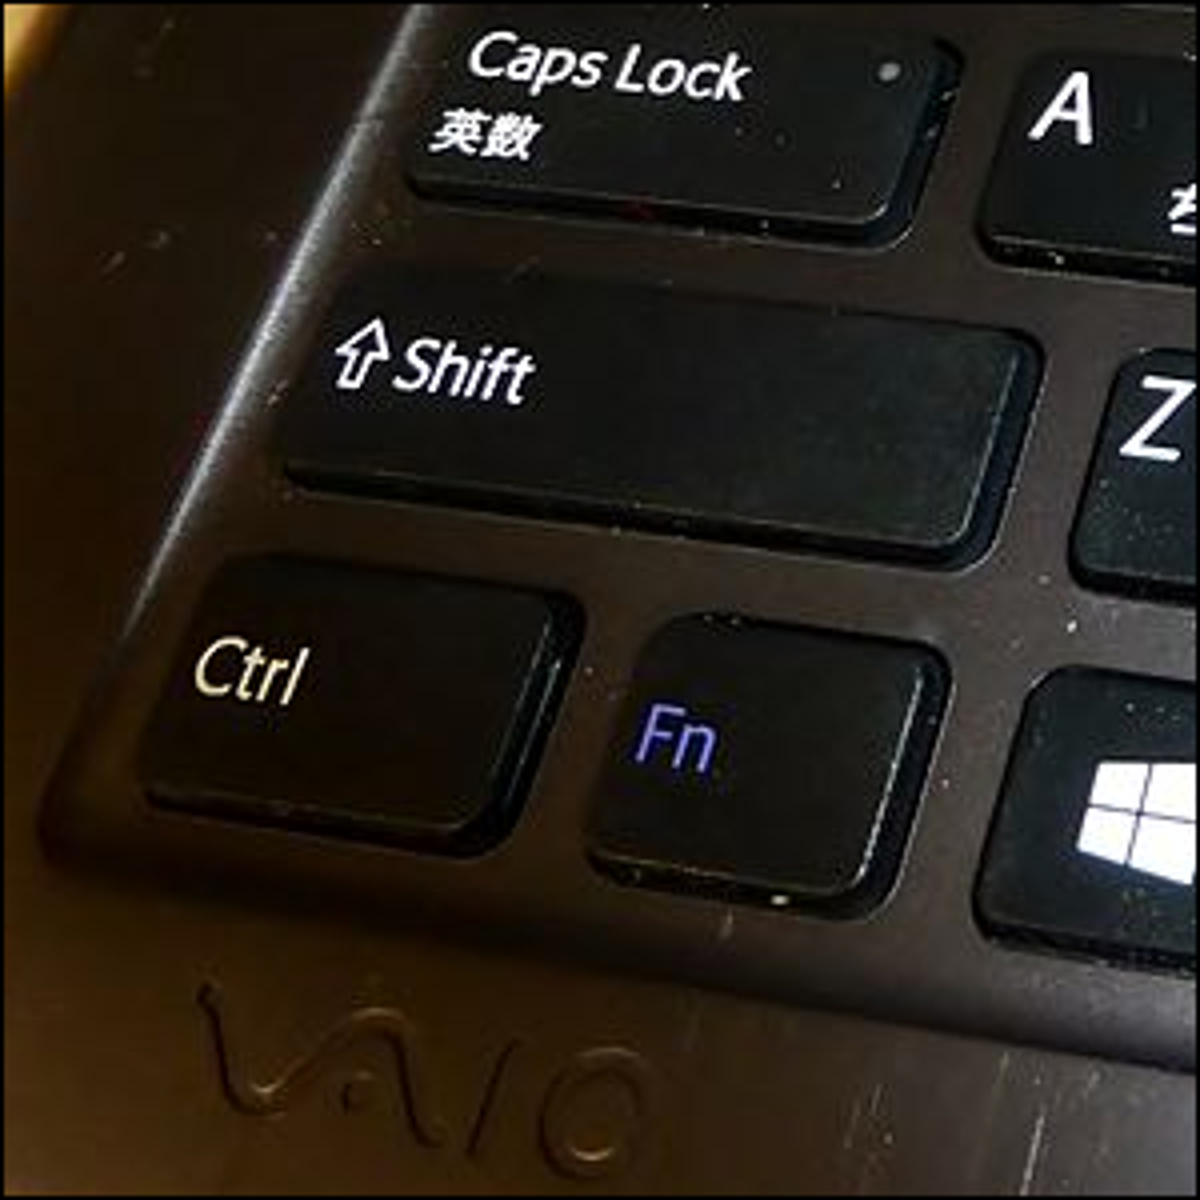 The shift key on a VAIO Duo 11 laptop.